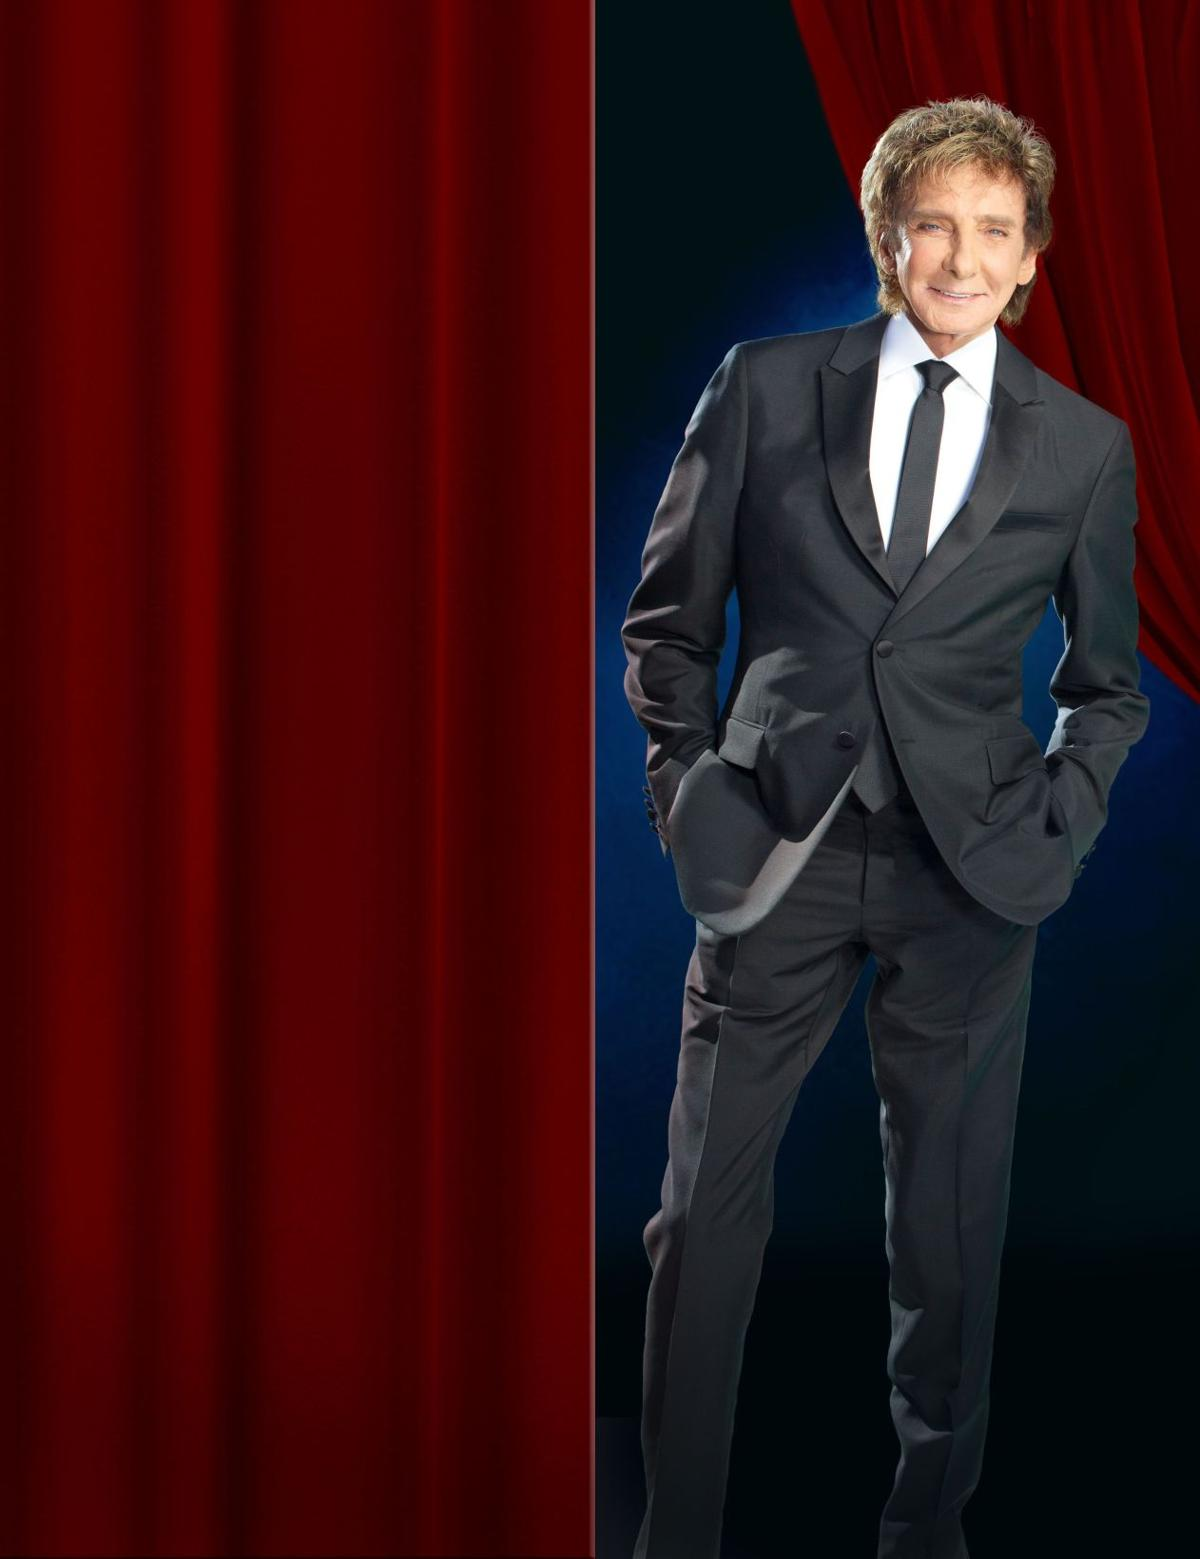 Barry Manilow to make one-night stop at North Charleston Coliseum